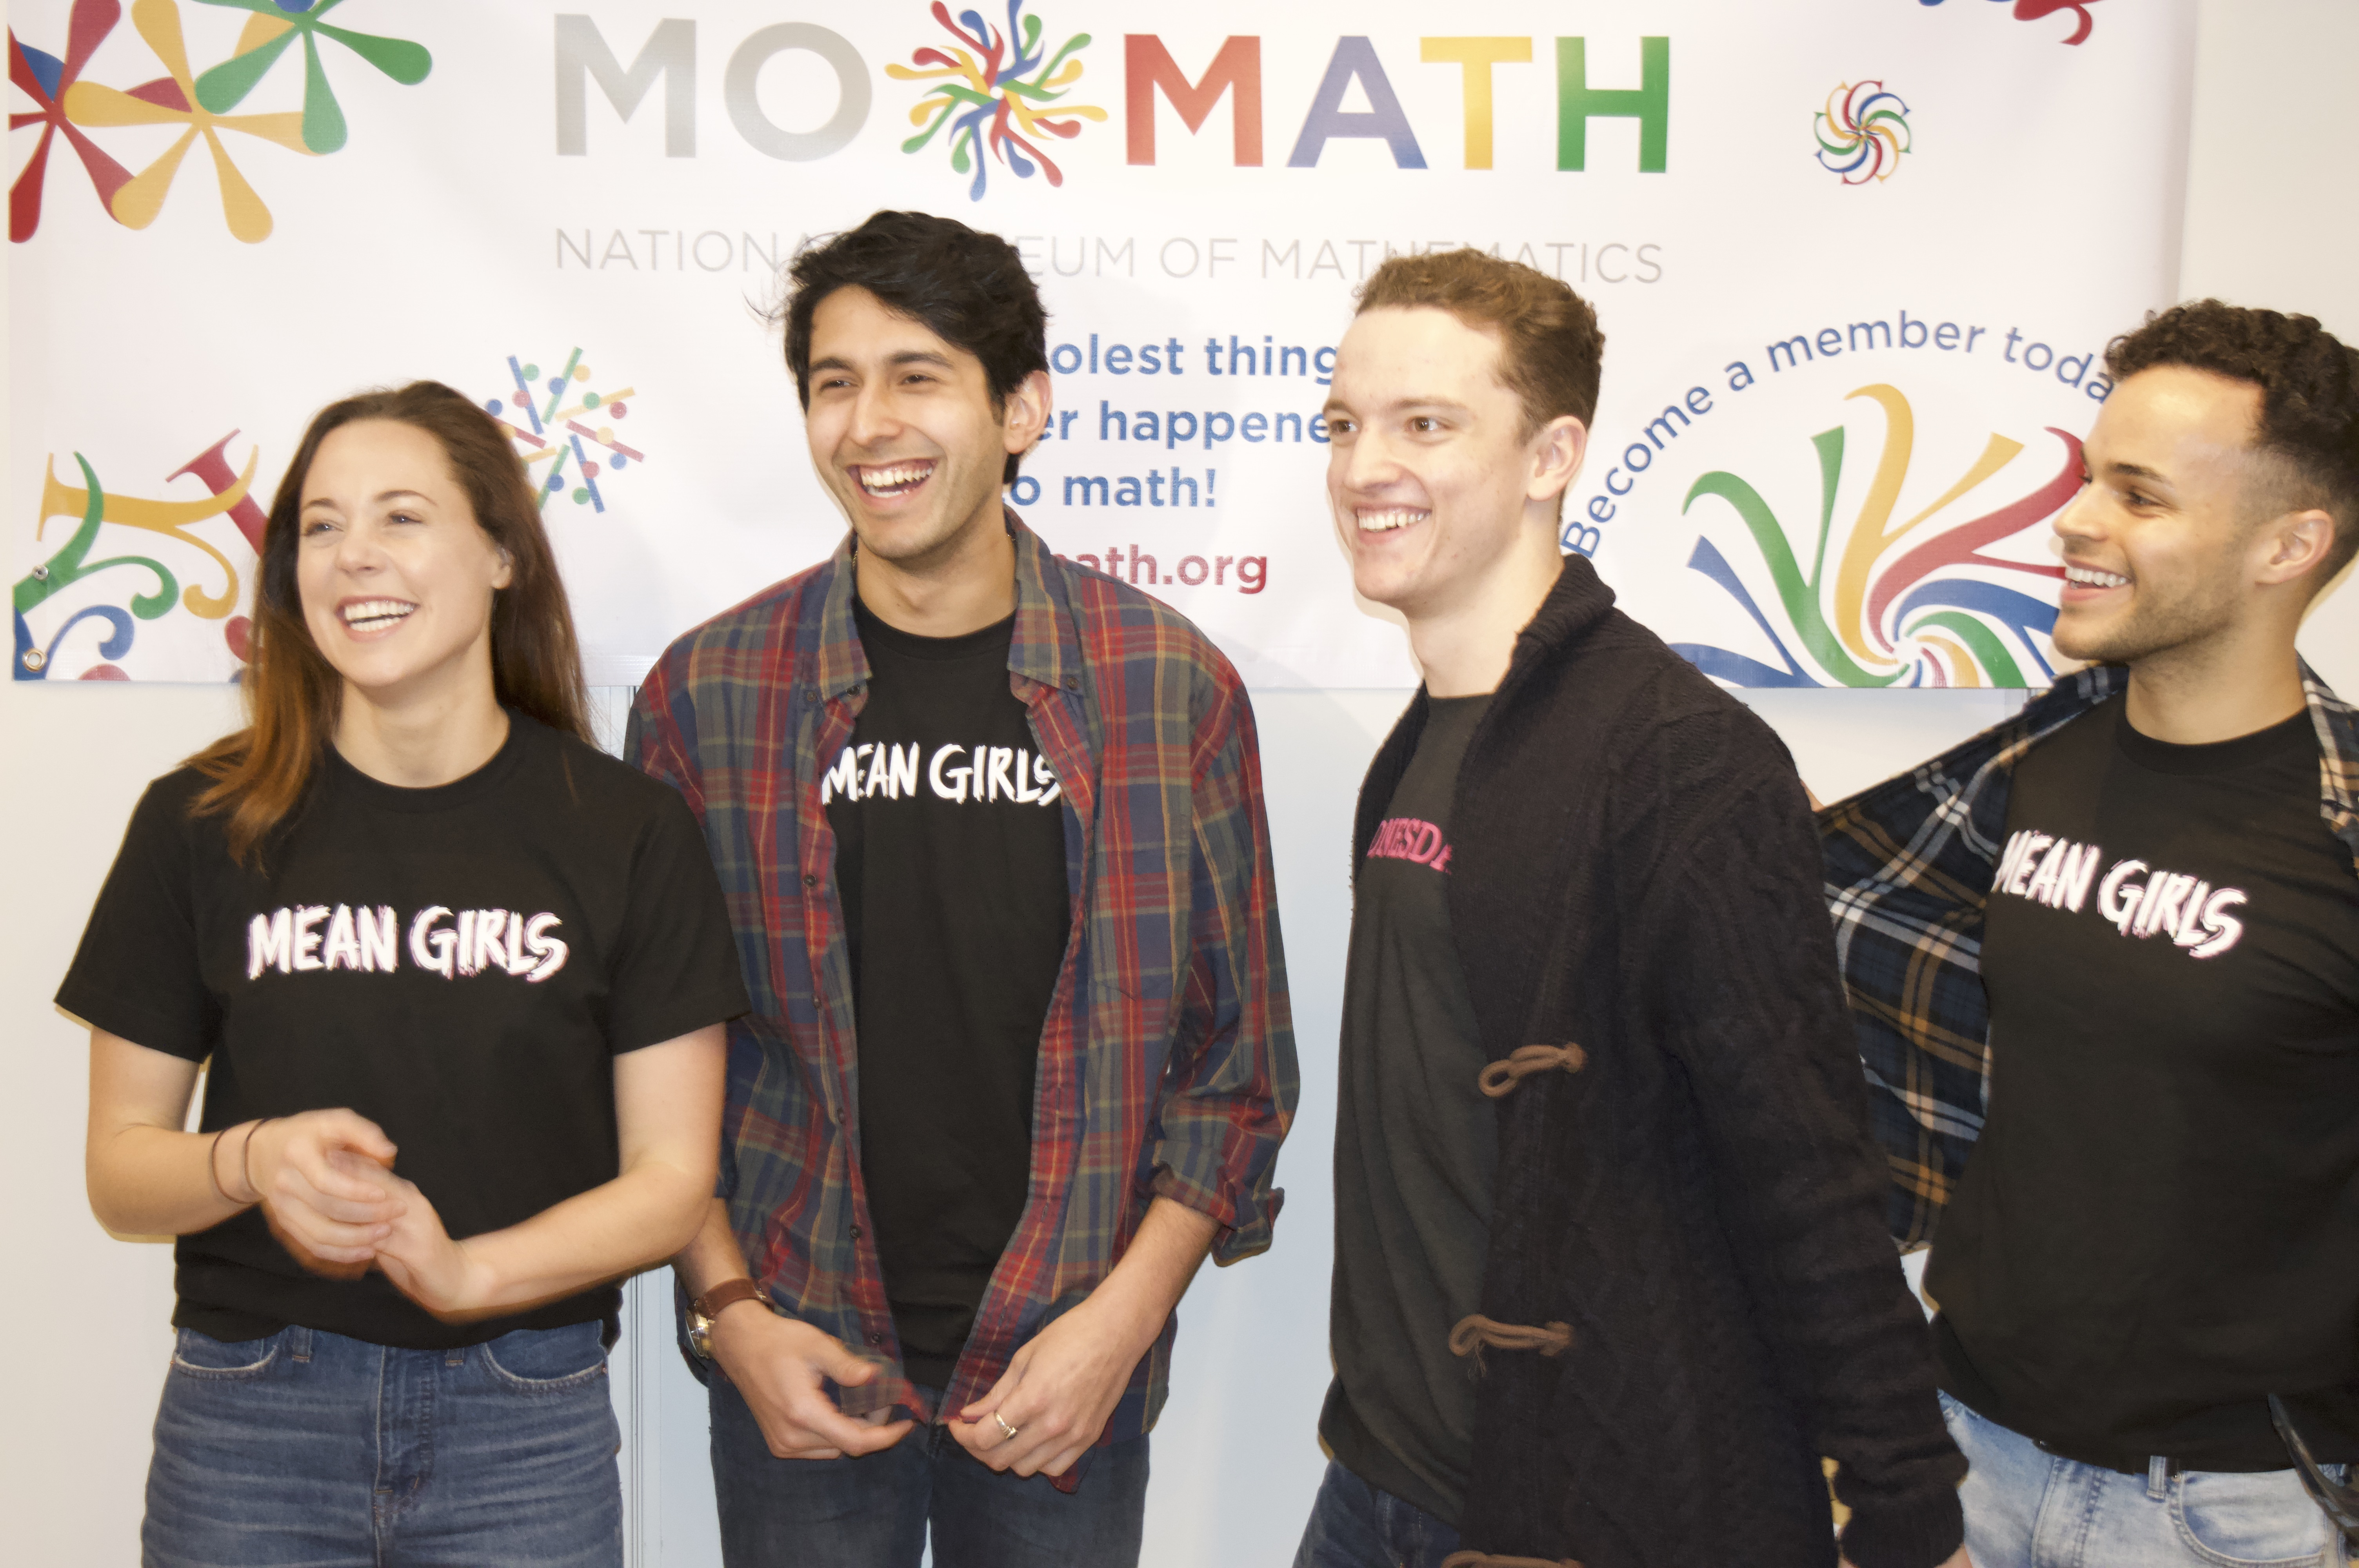 The cast of Mean Girls visited MoMath earlier this year for a student event